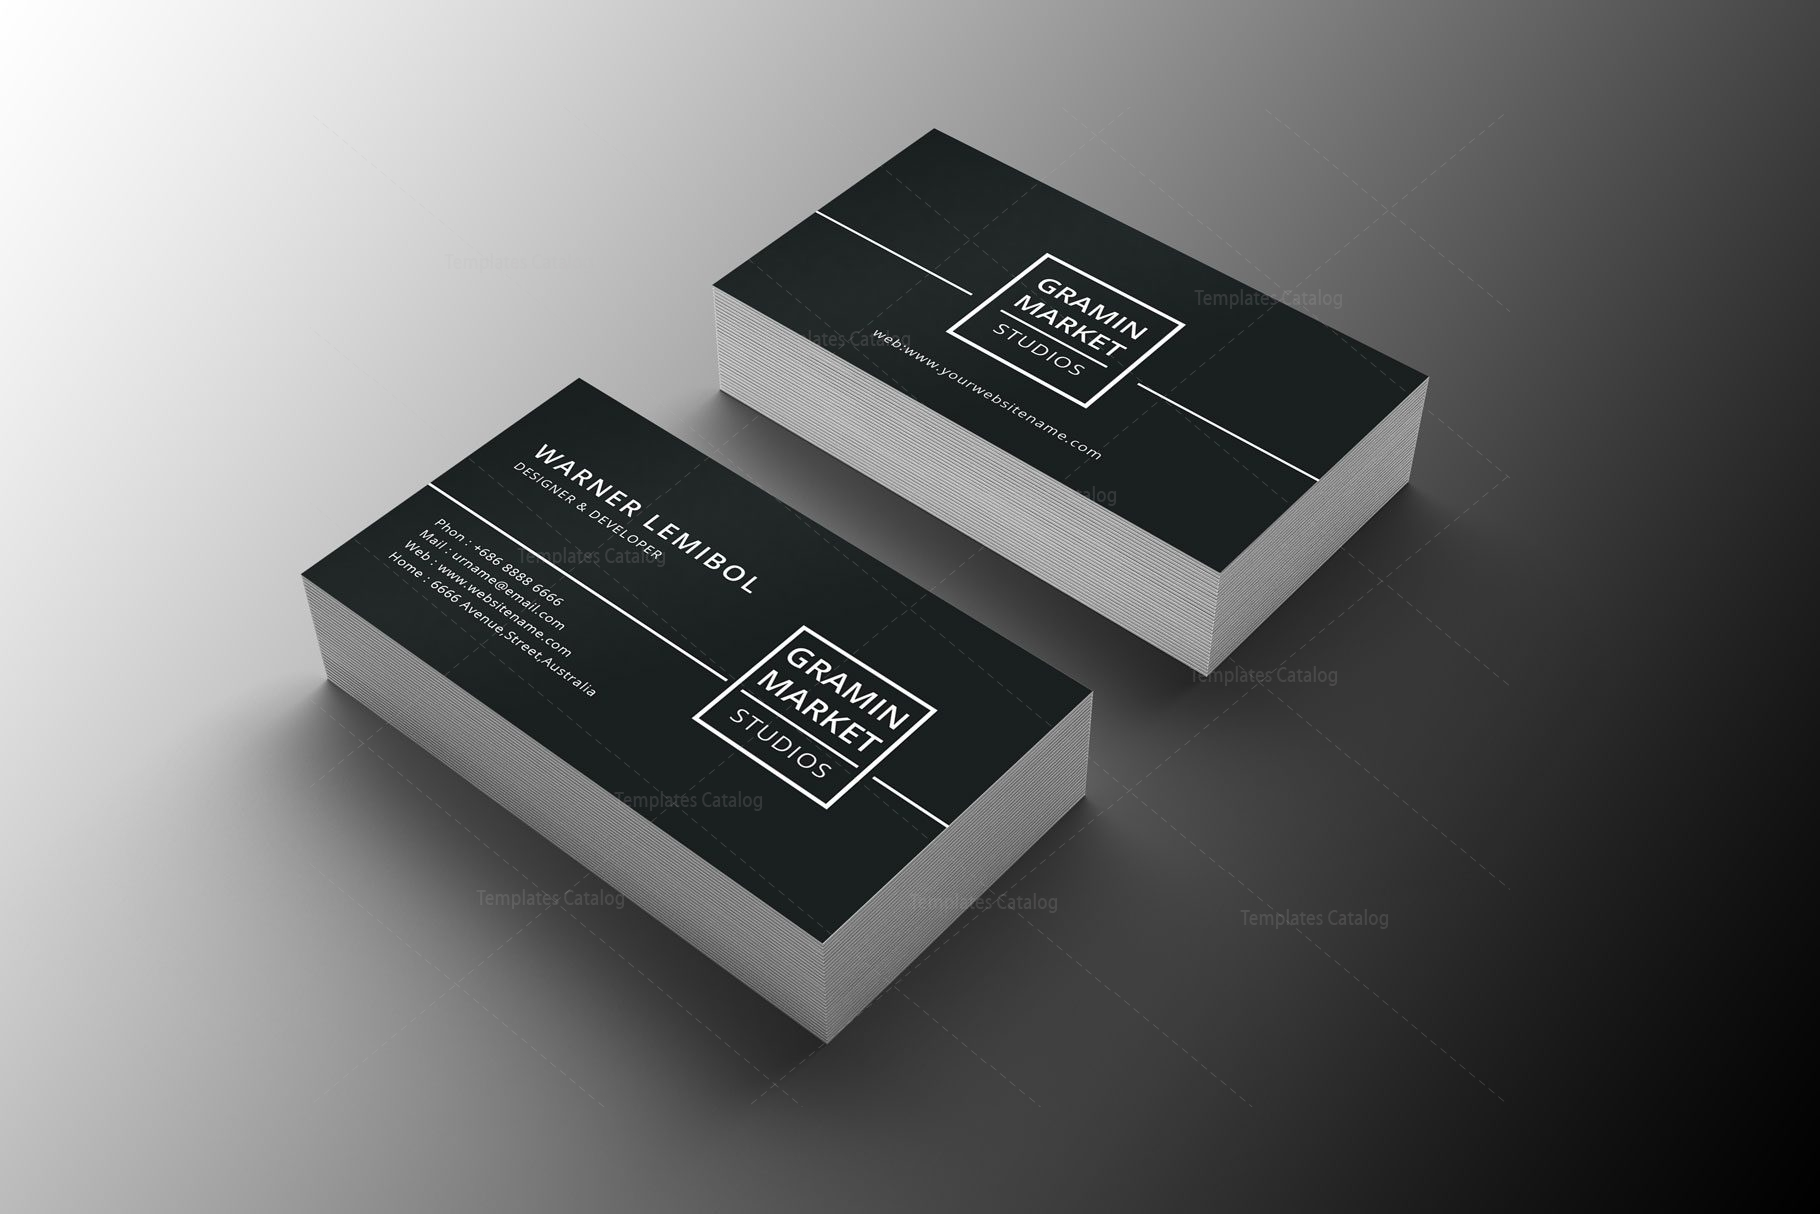 Minimal manager business card design 002247 template catalog minimal manager business card design 2 colourmoves